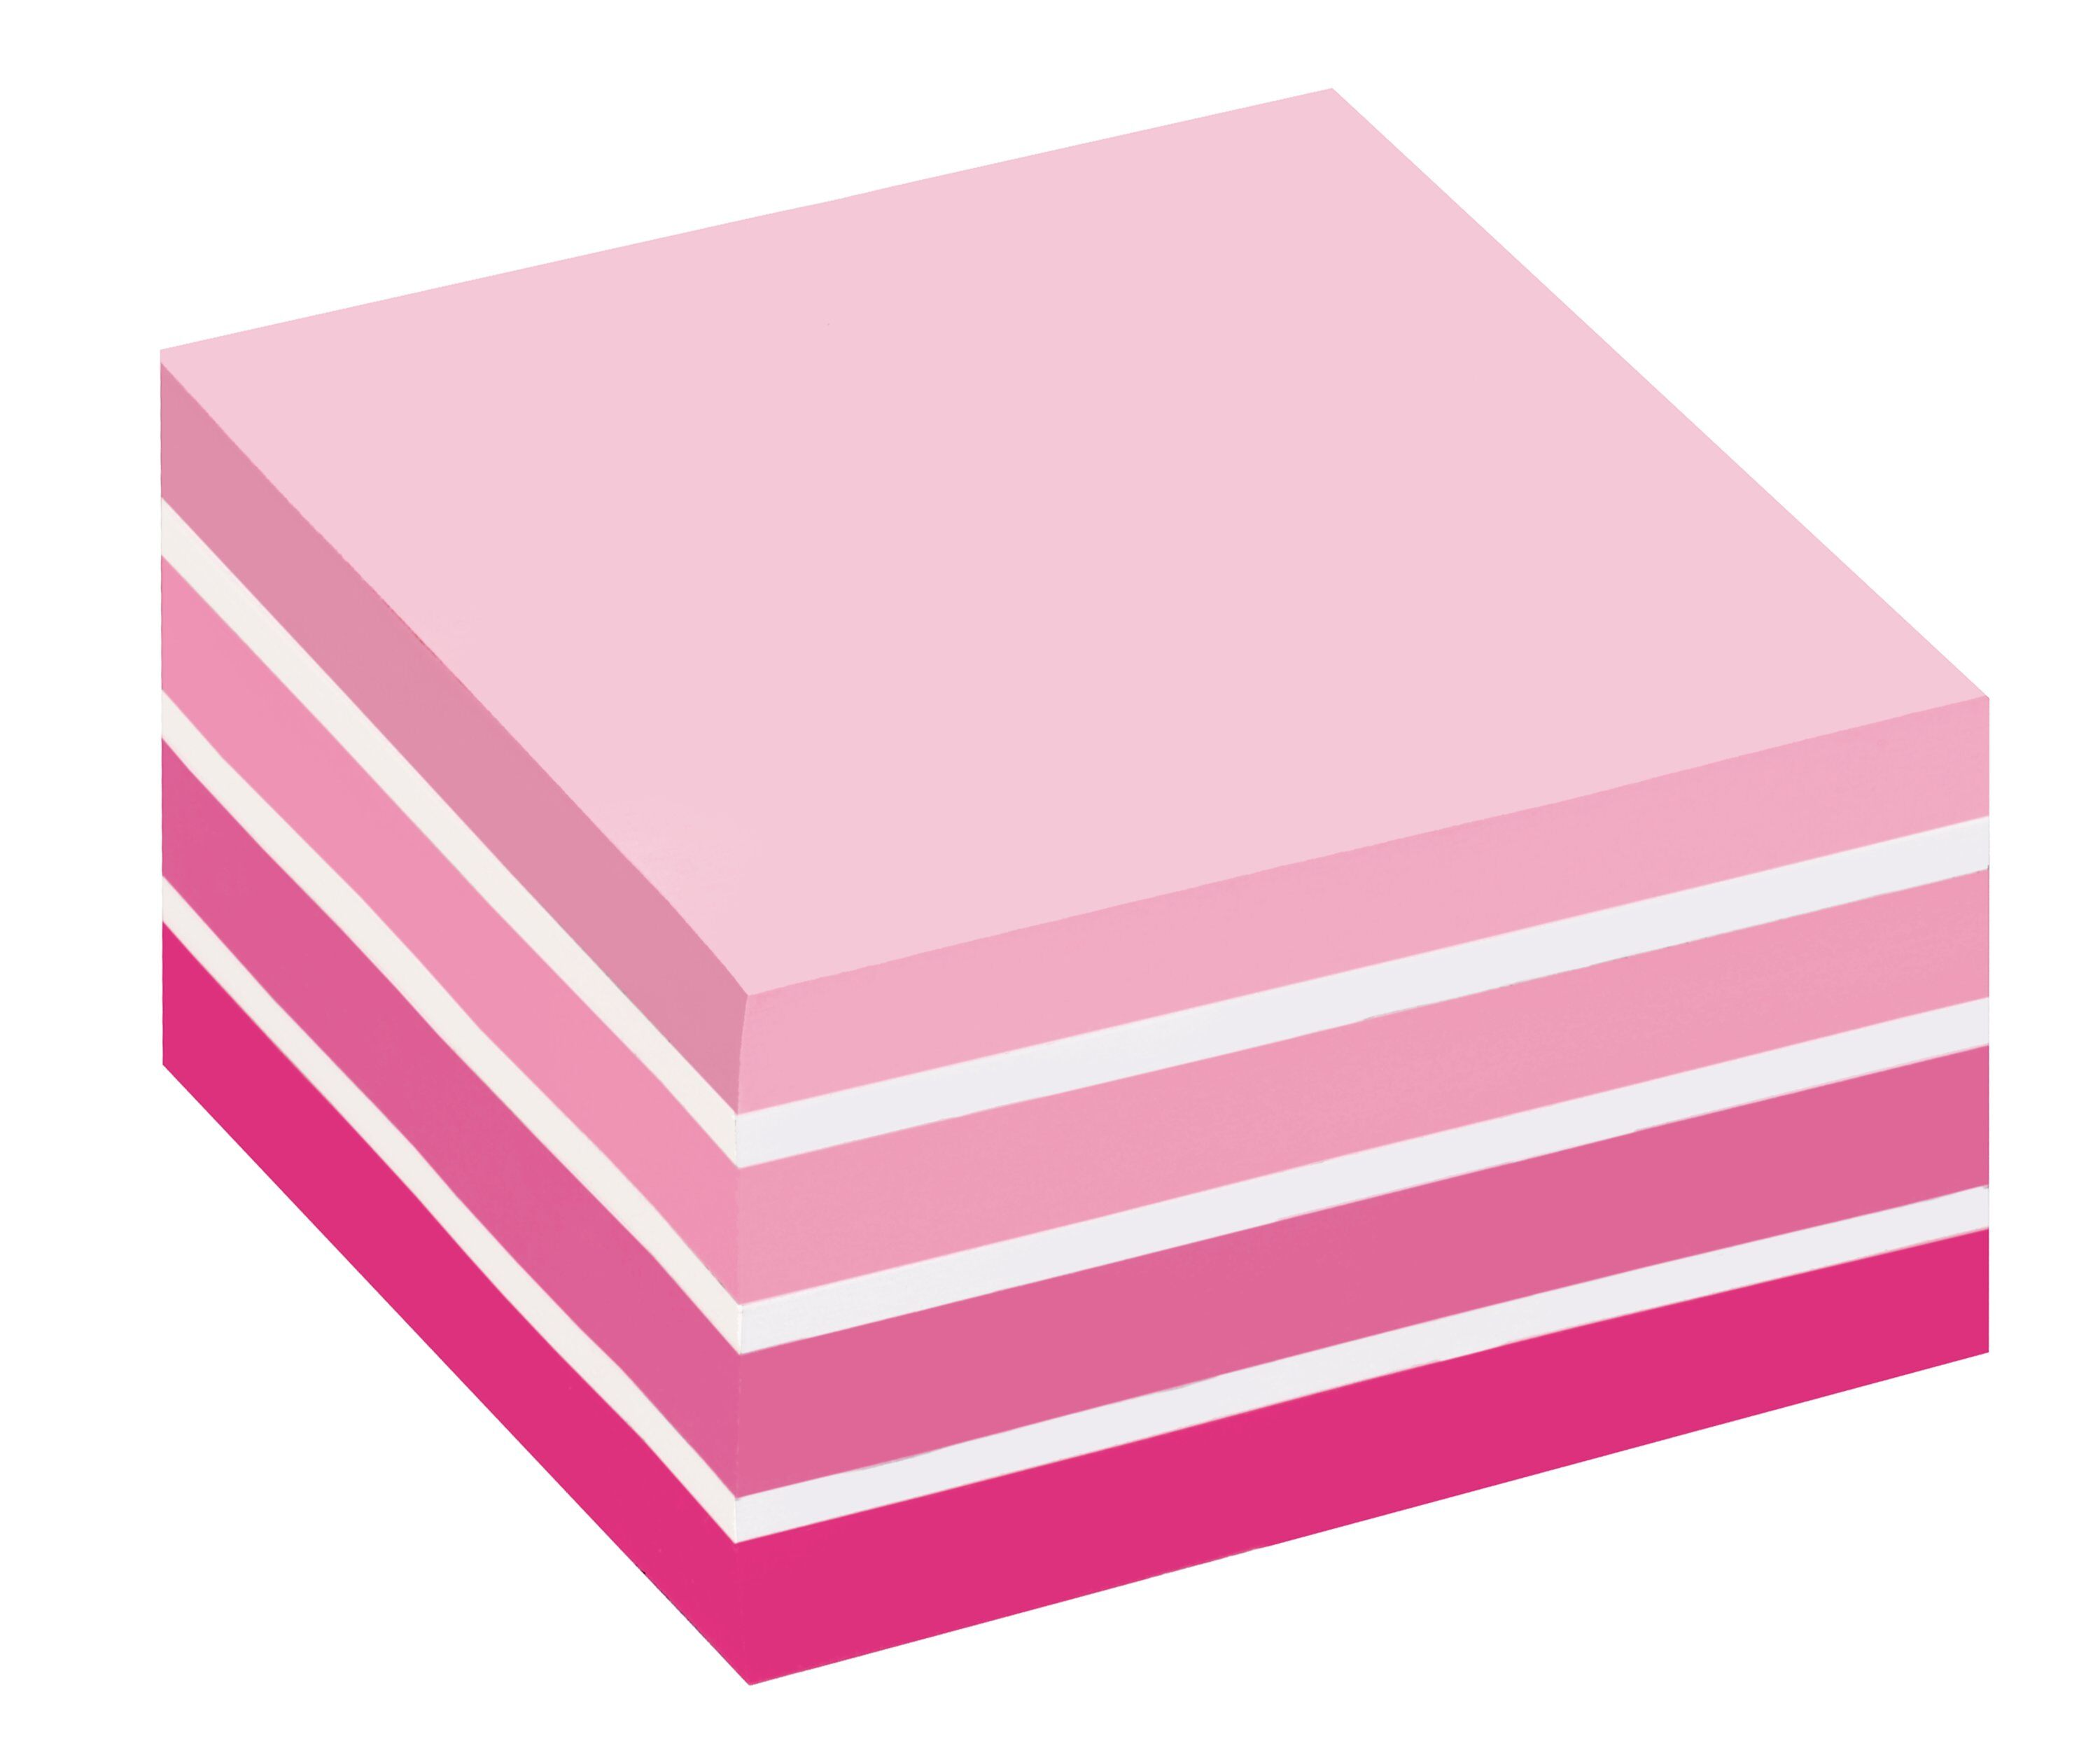 Post-it Note Cube 76x76mm Pastel Pink 2028P